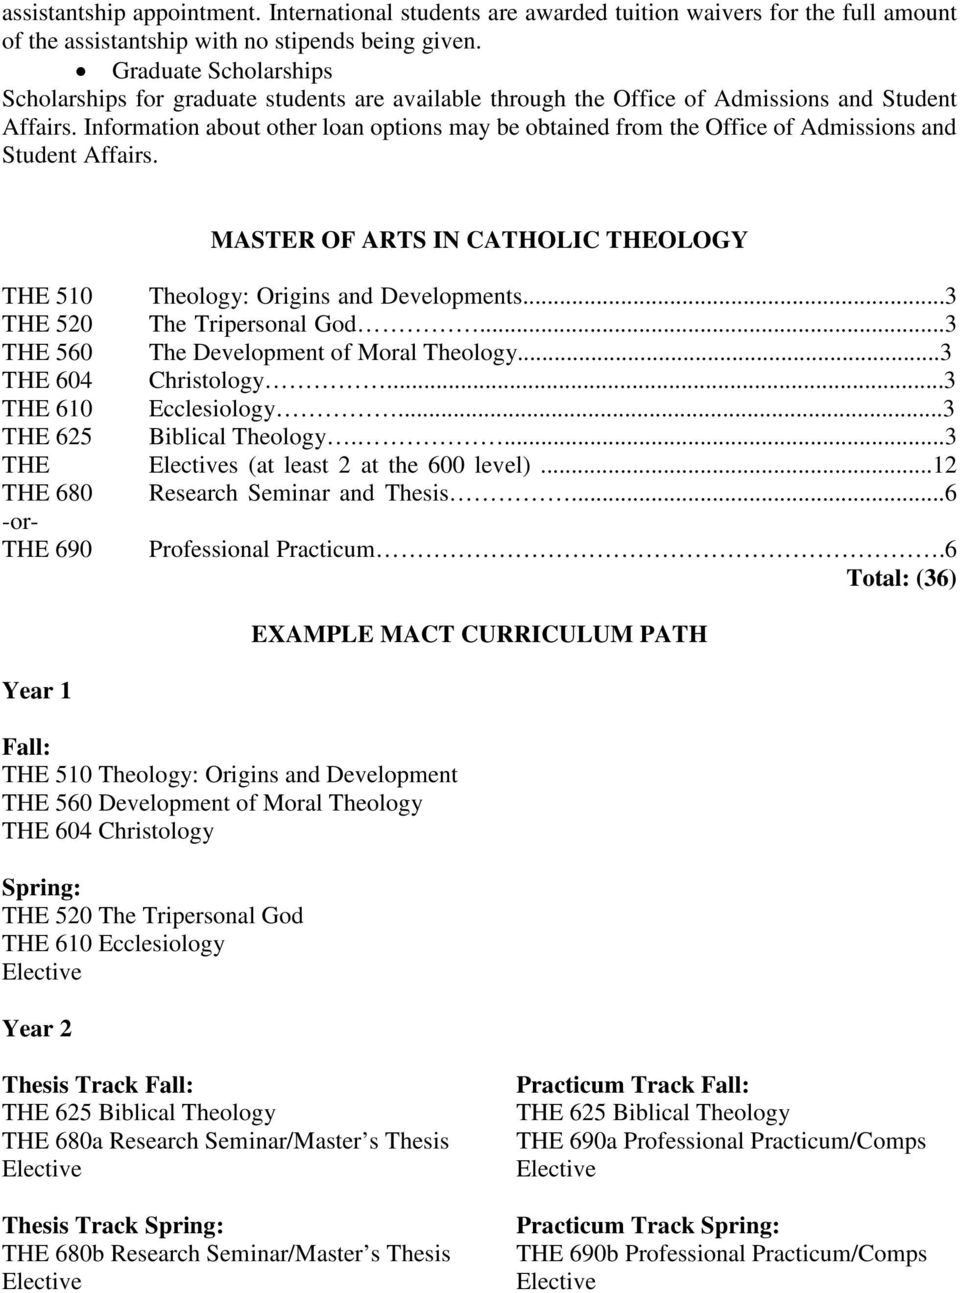 Information about other loan options may be obtained from the Office of Admissions and Student Affairs. MASTER OF ARTS IN CATHOLIC THEOLOGY THE 510 Theology: Origins and Developments.